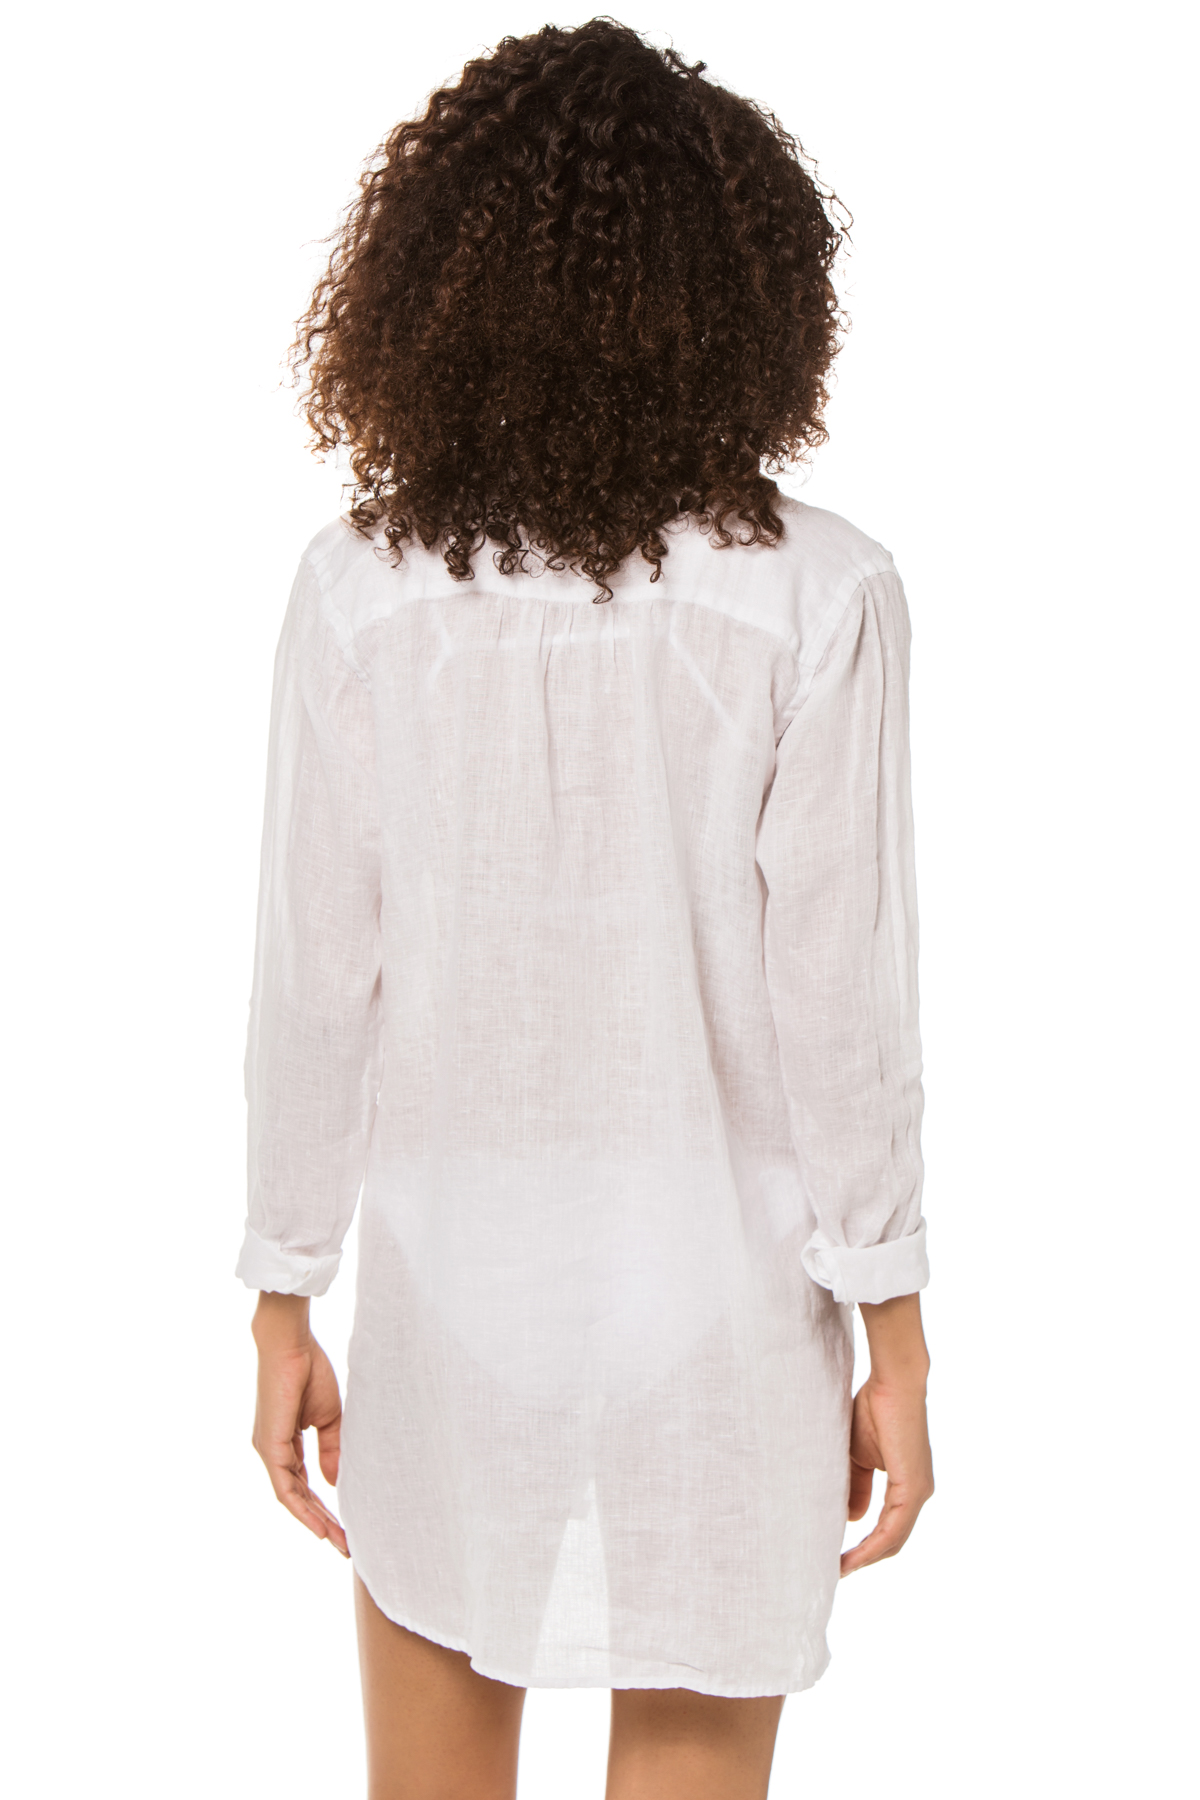 Teton Long Sleeve Tunic - White 6